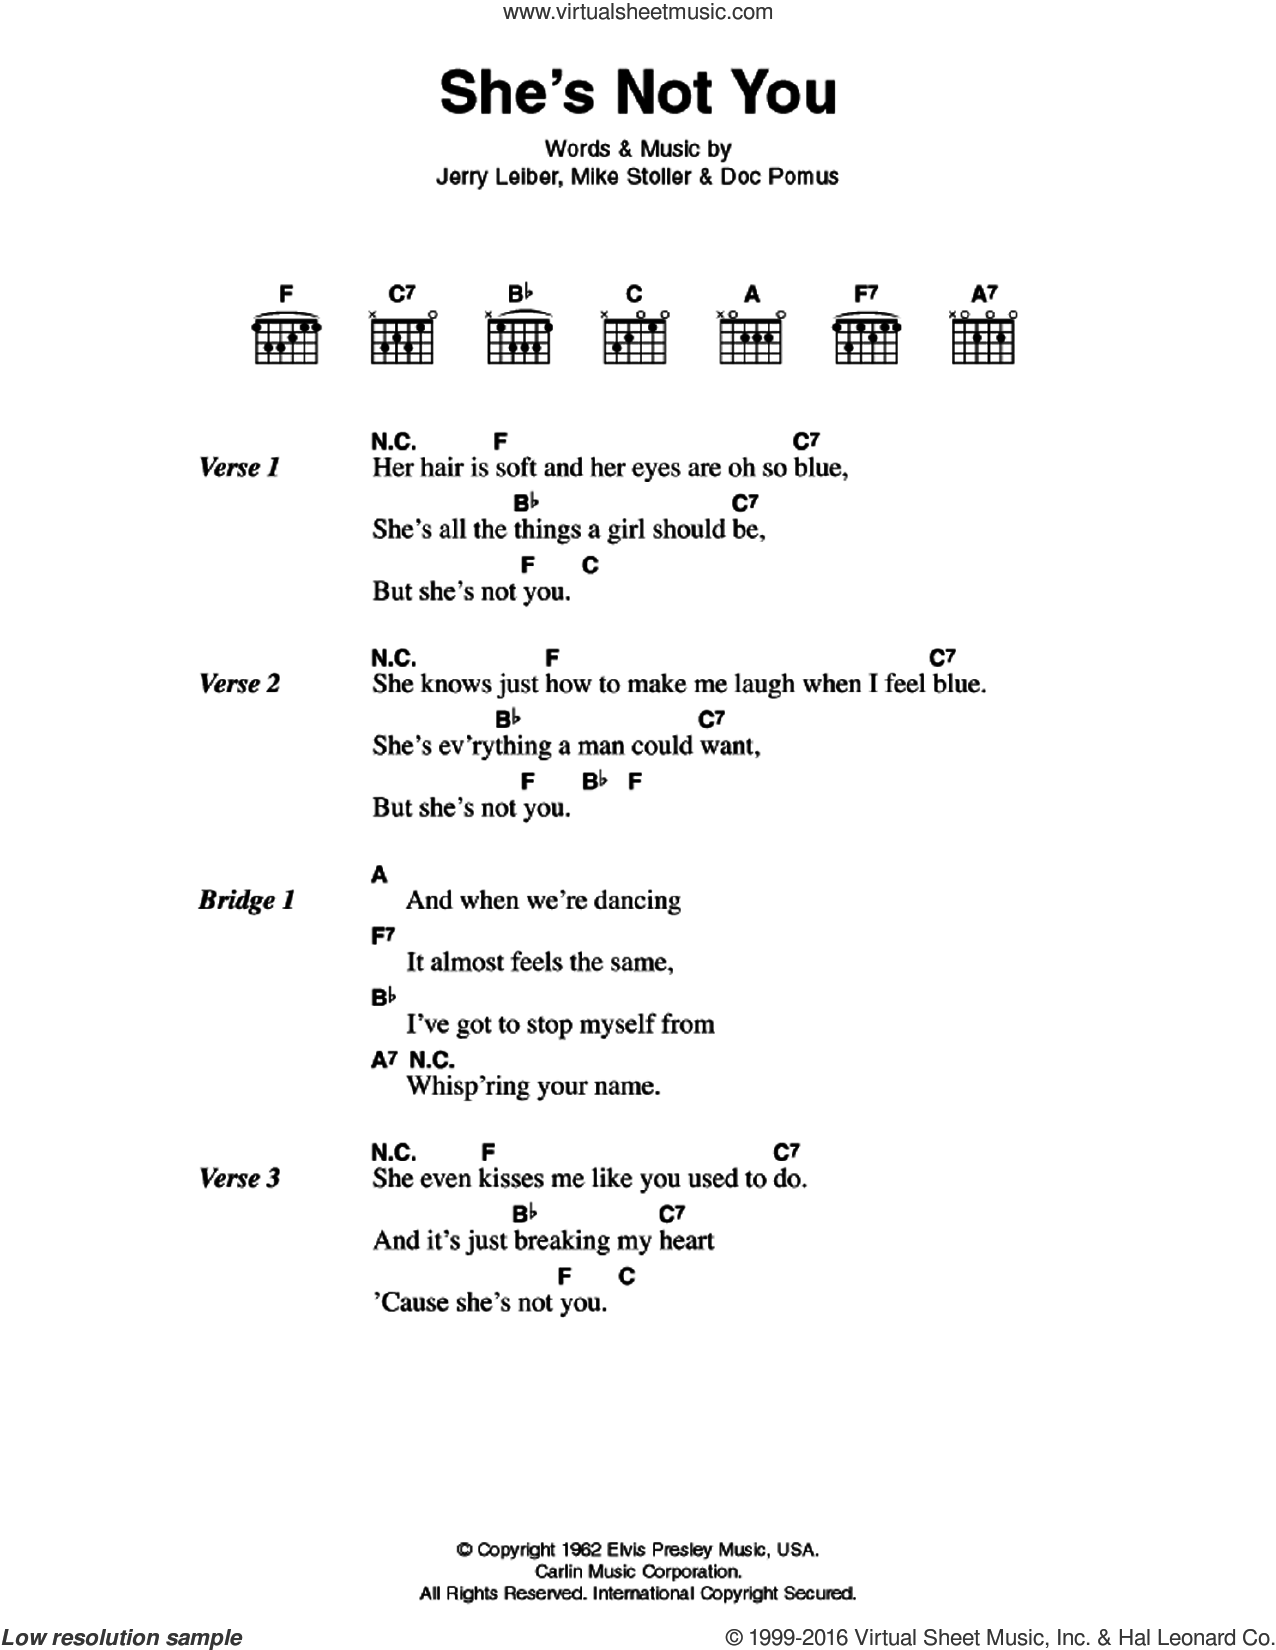 She's Not You sheet music for guitar (chords) by Elvis Presley, Doc Pomus, Jerry Leiber and Mike Stoller, intermediate skill level